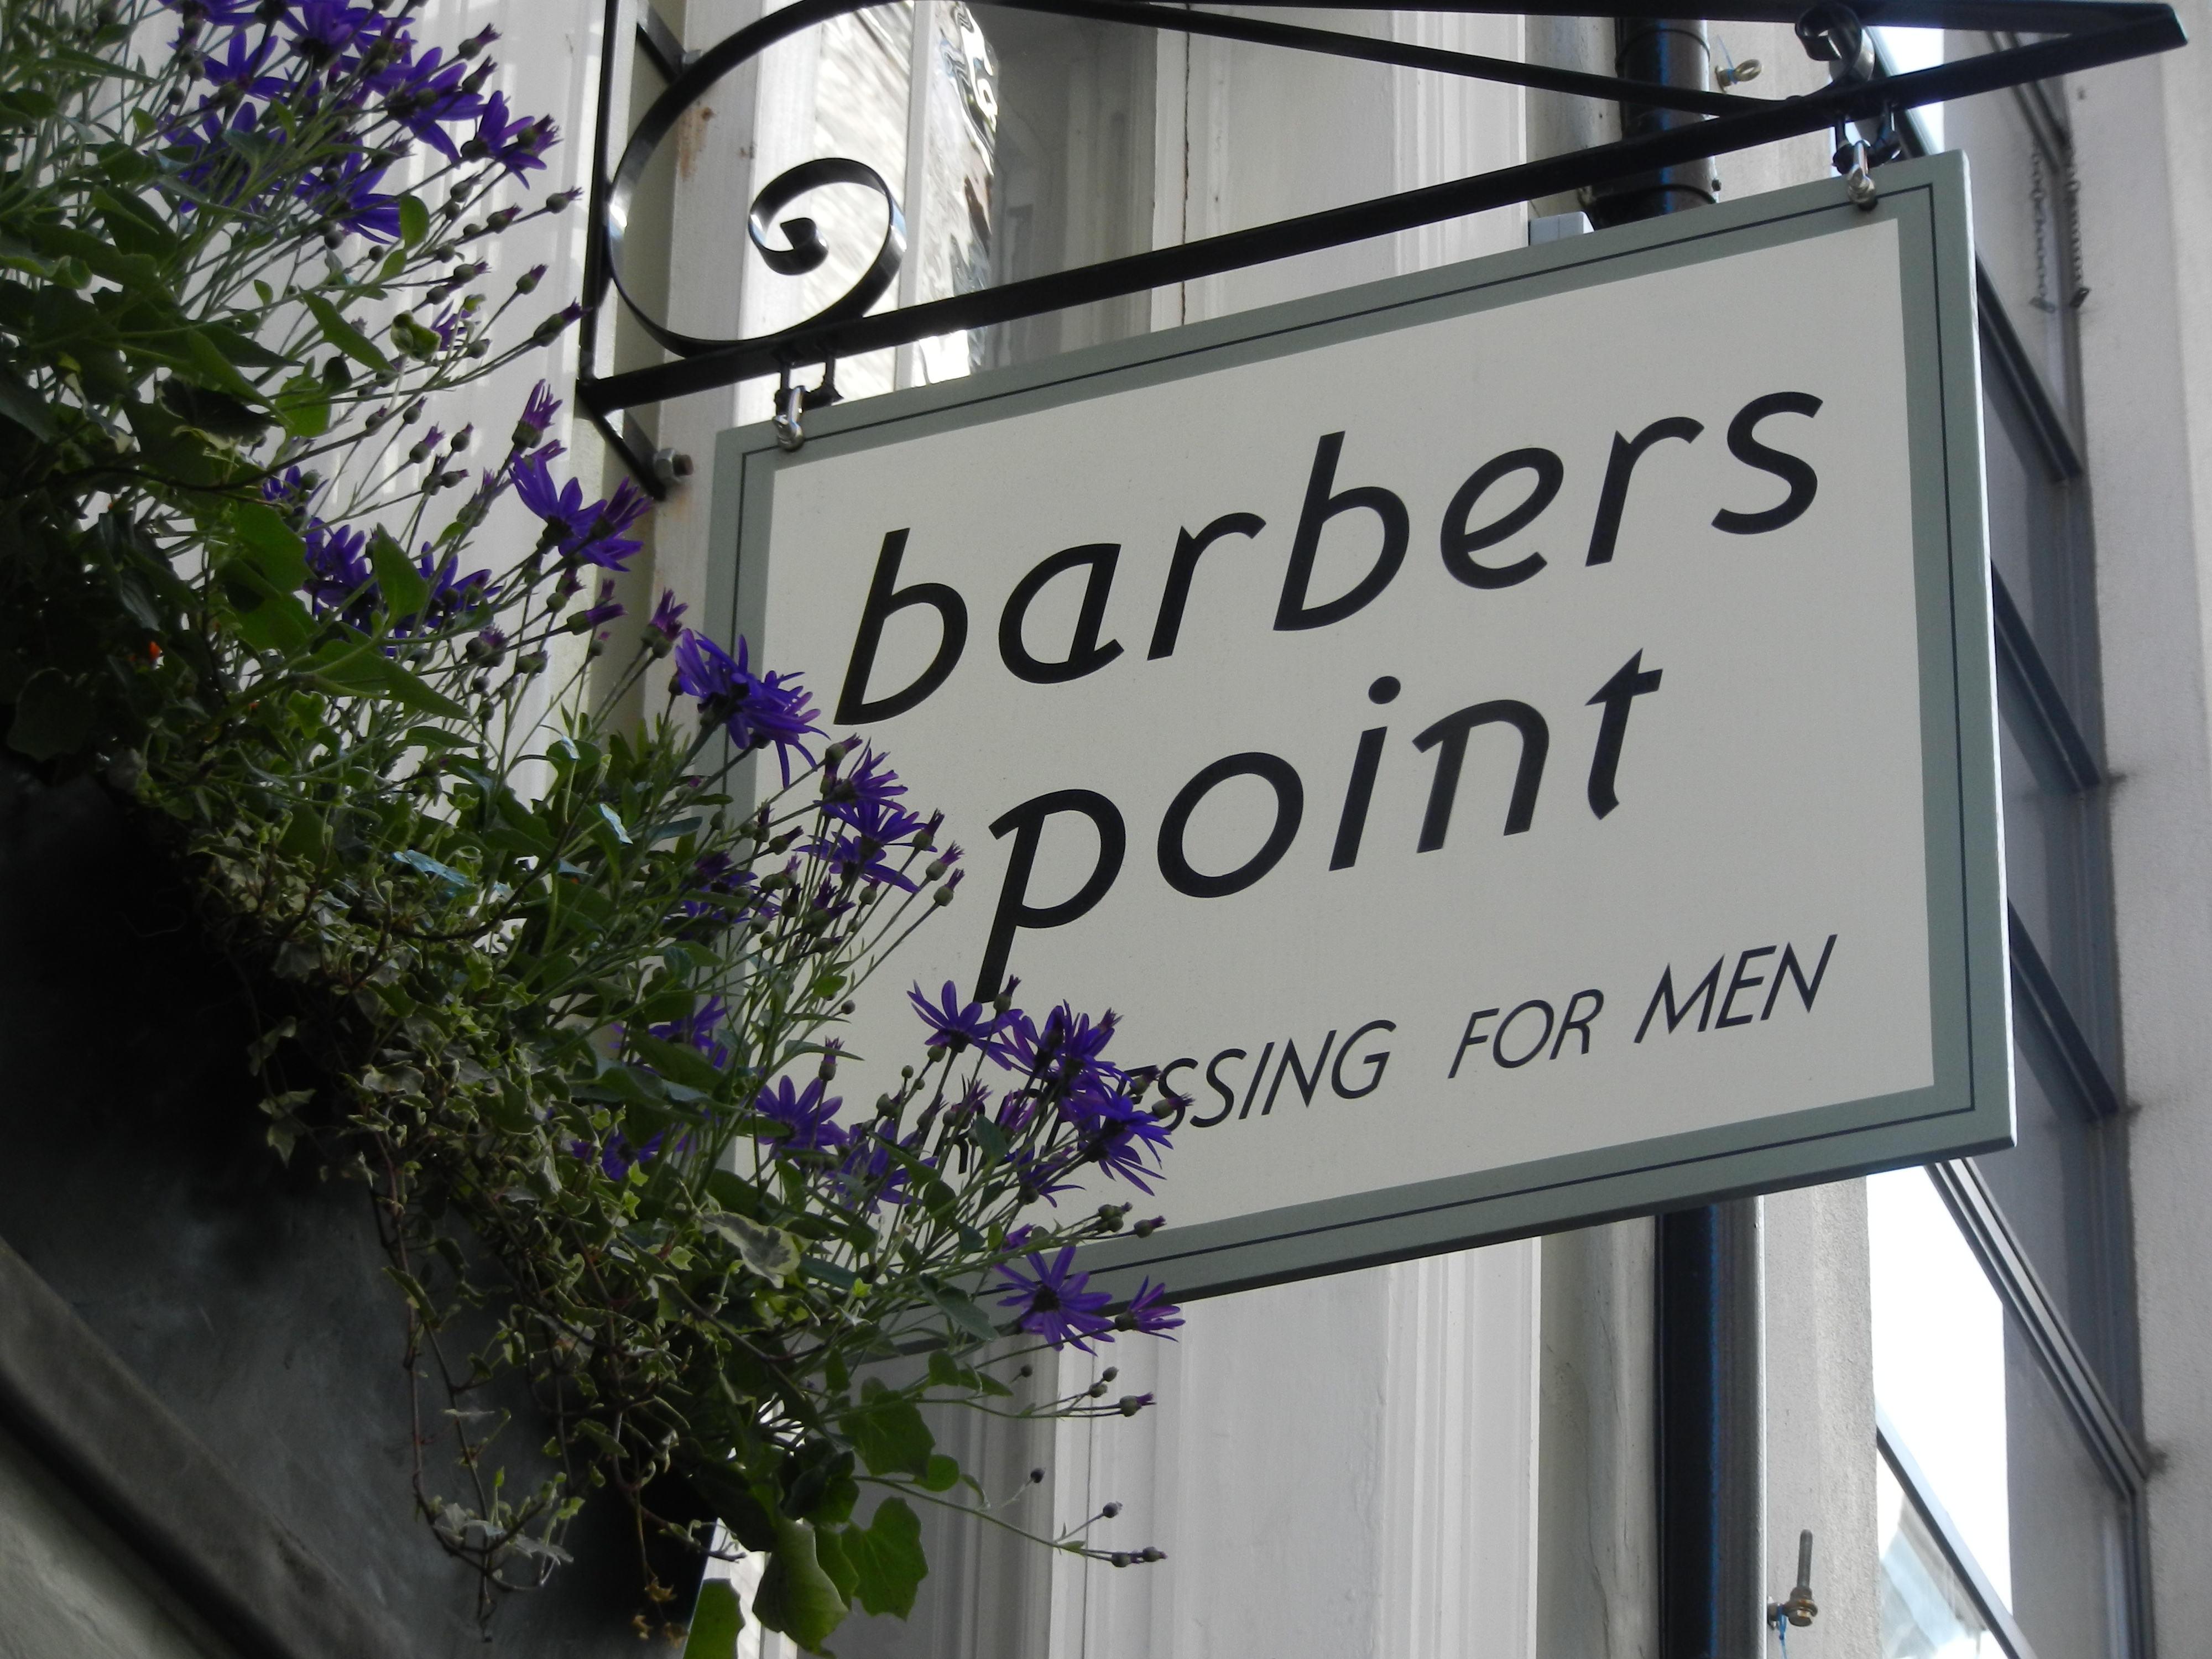 Barbers Point